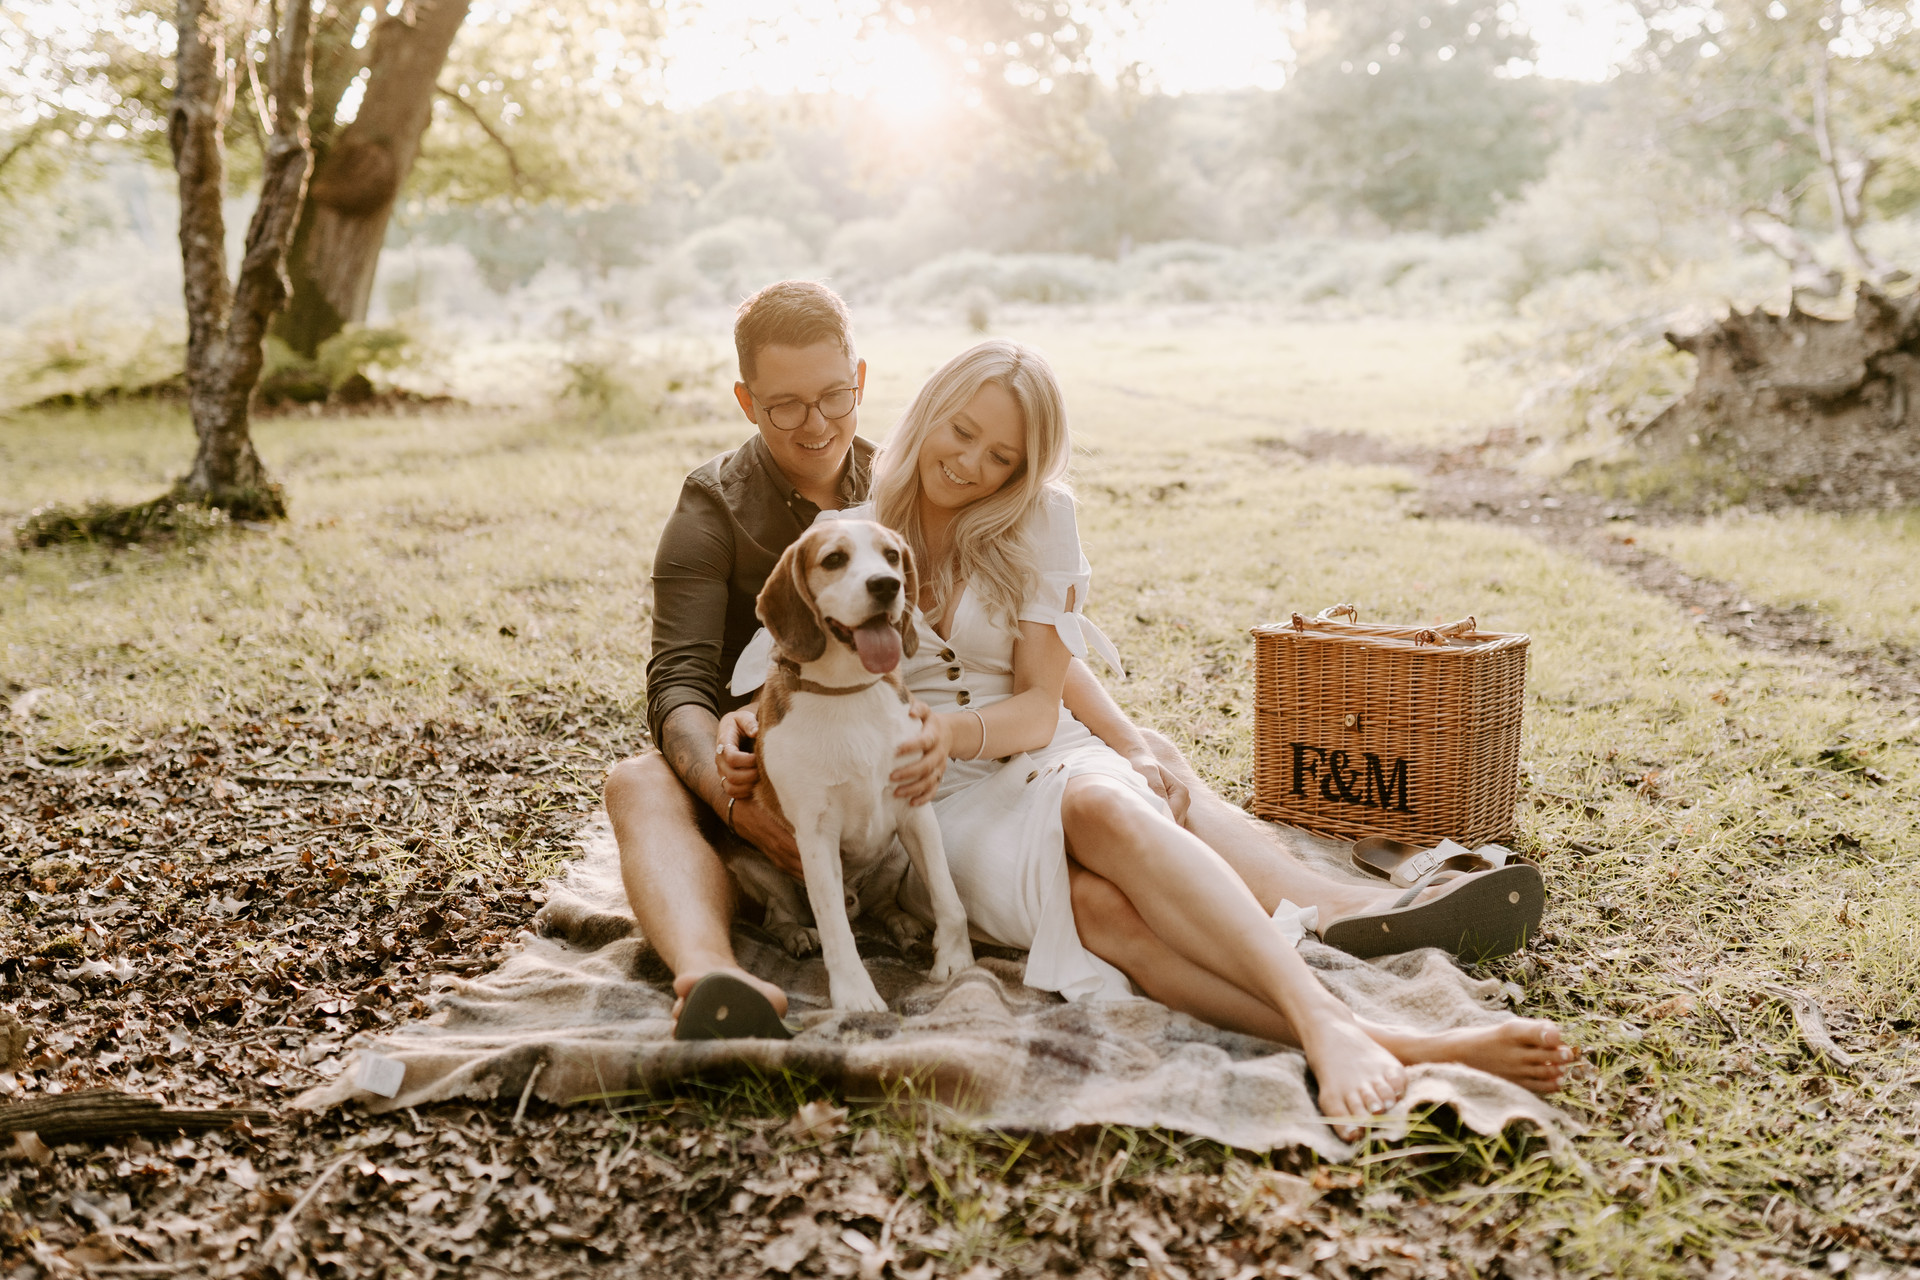 Sian & Mike | Couple Session-079.jpg